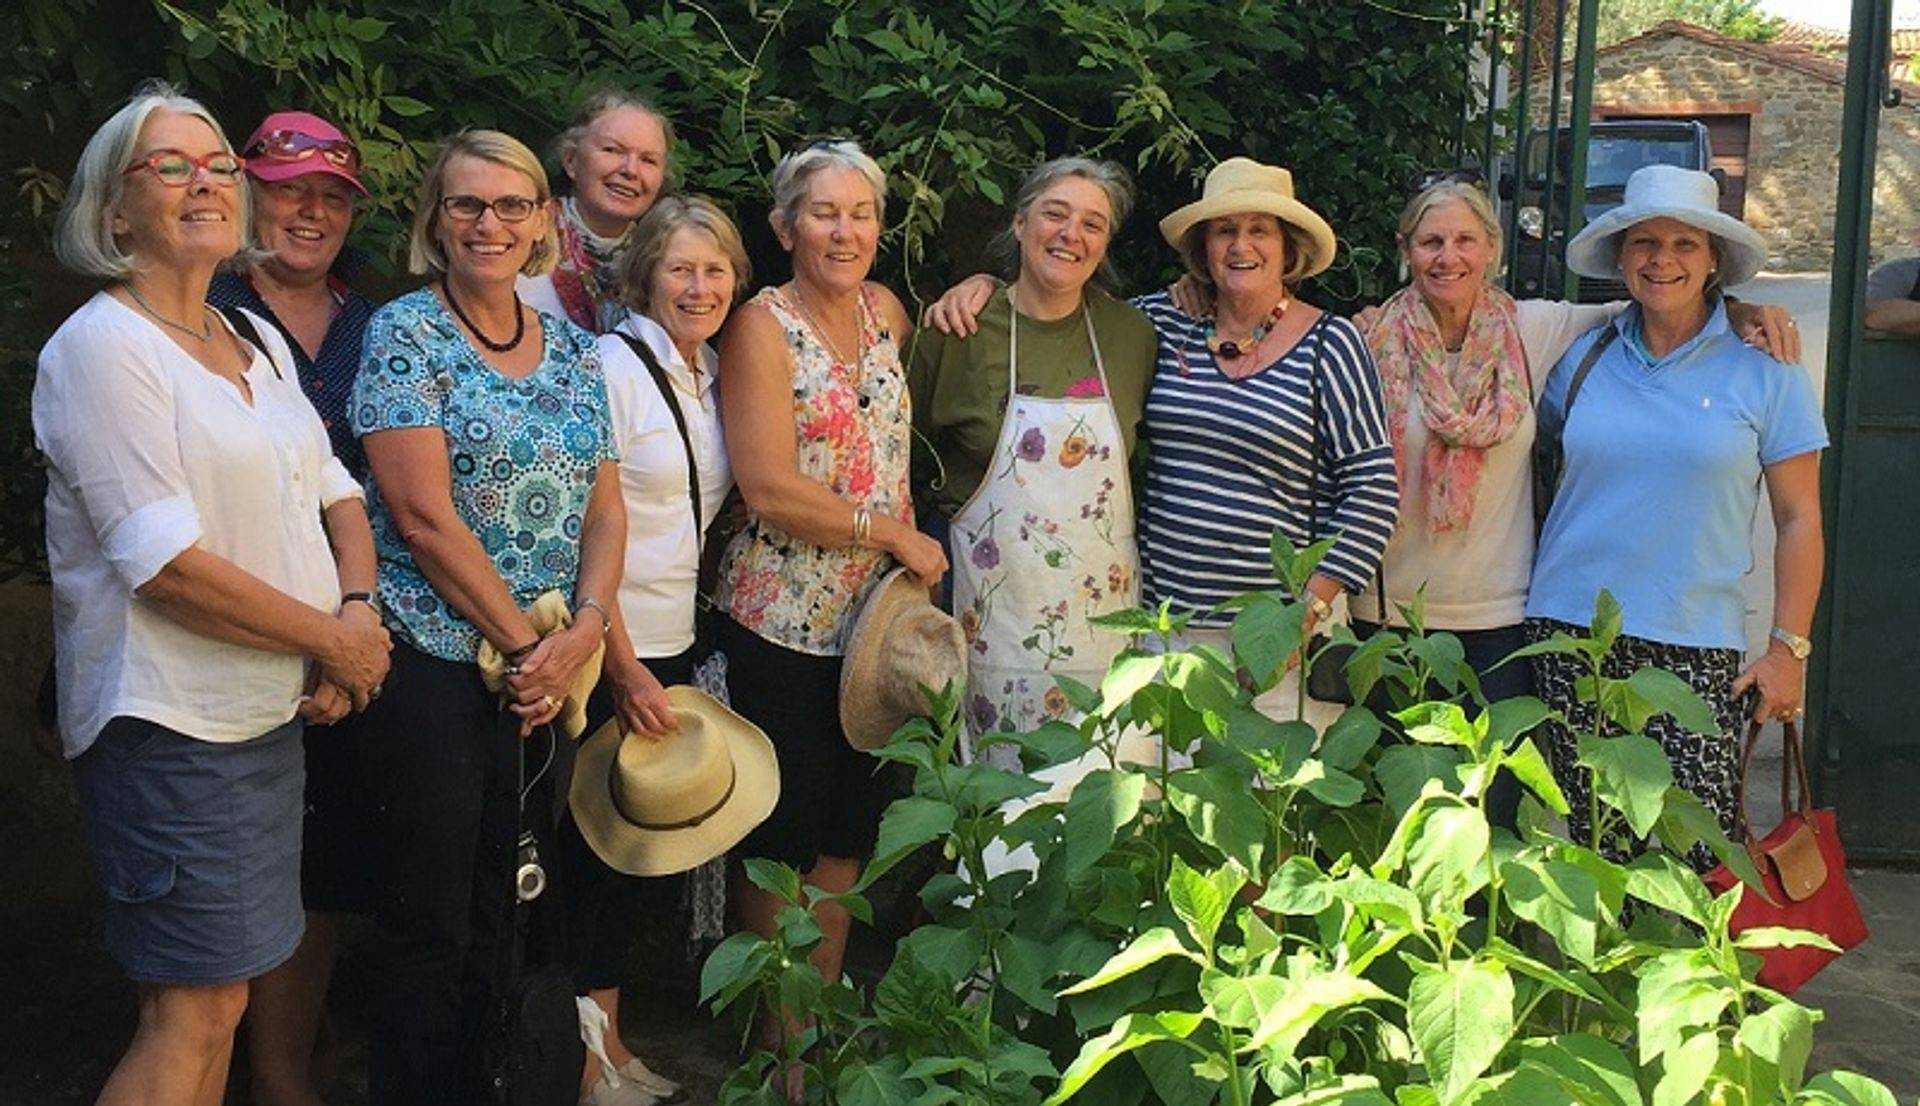 AUSTRALIAN WOMENS TRAVEL  Small group tours  Just for Women